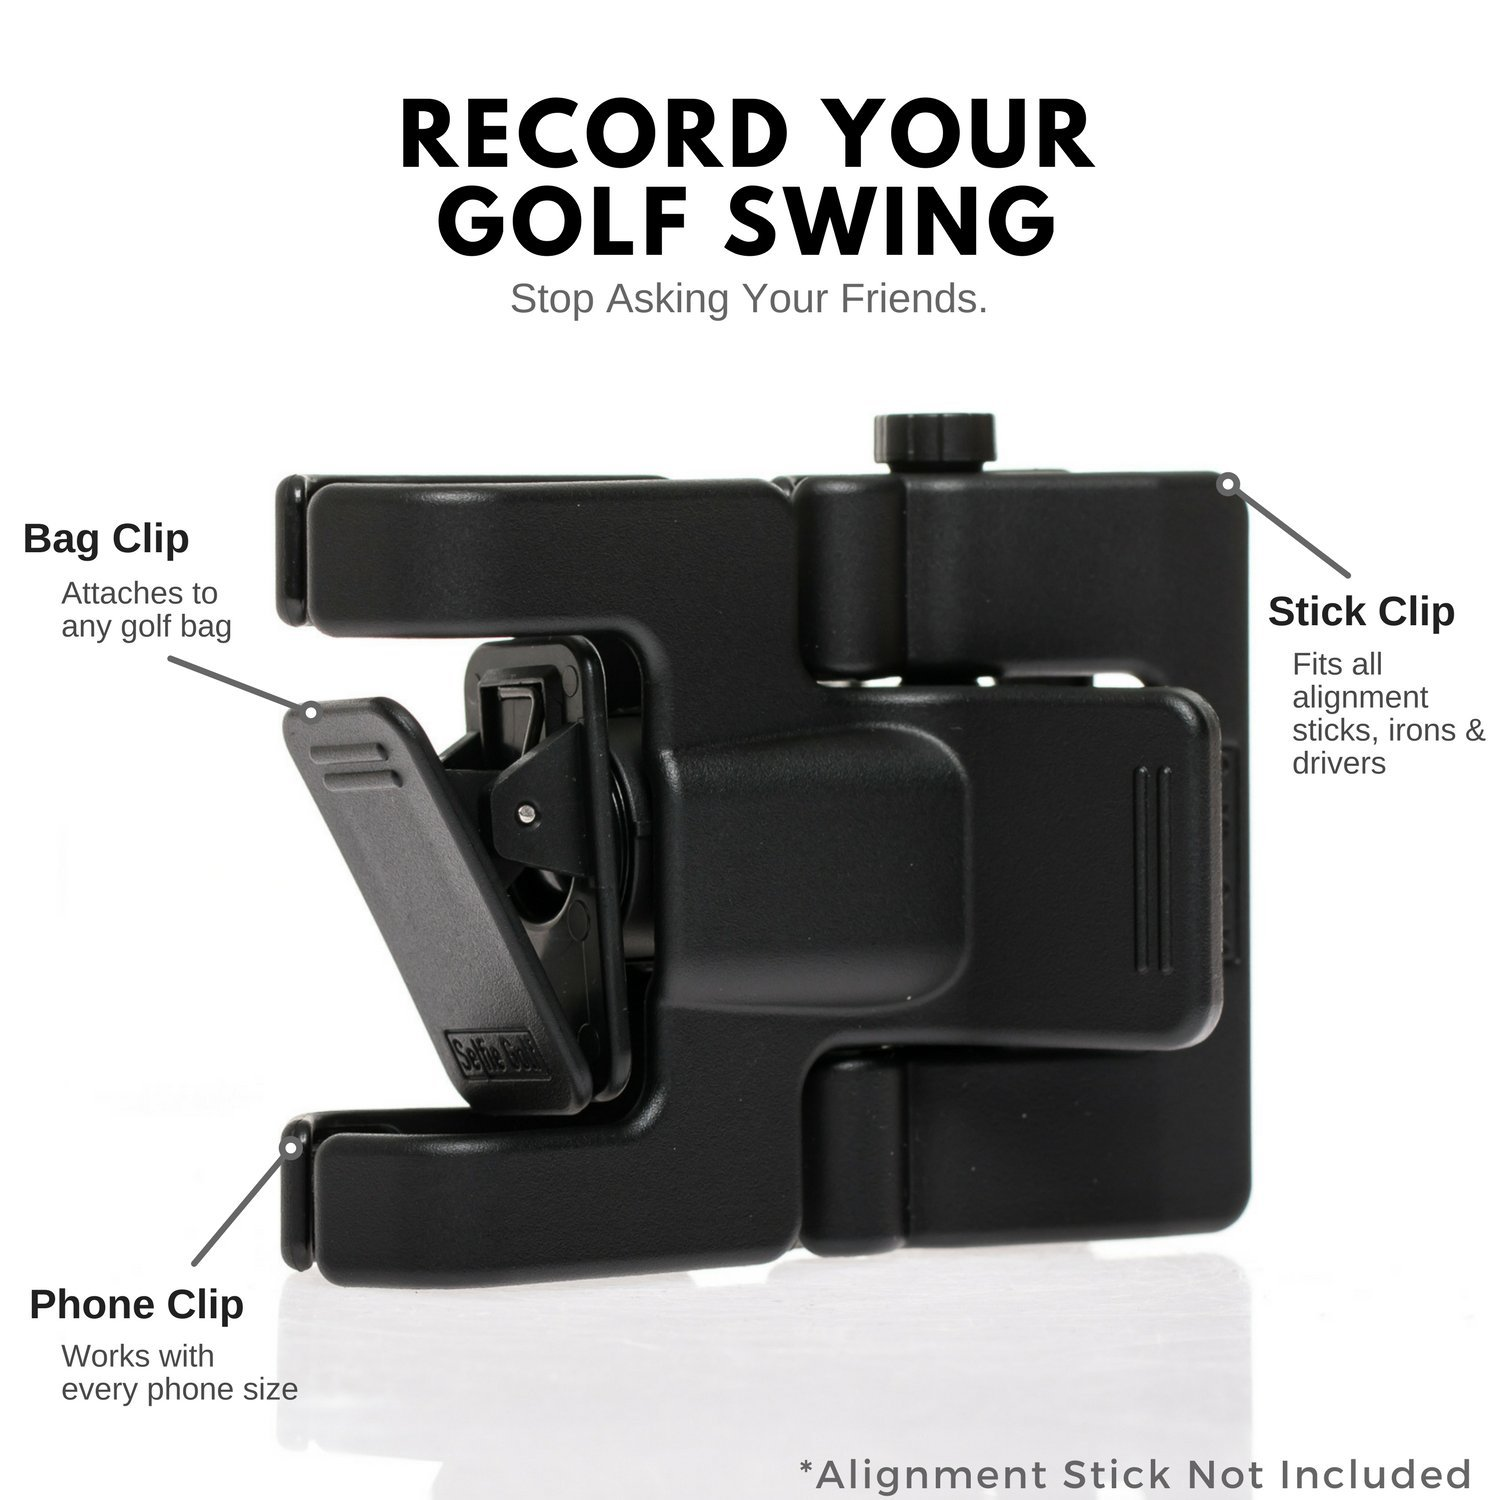 SelfieGolf Record Golf Swing-Cell Phone Clip Holder and Training Aid by TM-Golf Accessories |The Winner of The PGA Best of 2017 |Compatible with Any Smart Phone,Quick Set Up (Matte Black) by Selfie Golf (Image #3)